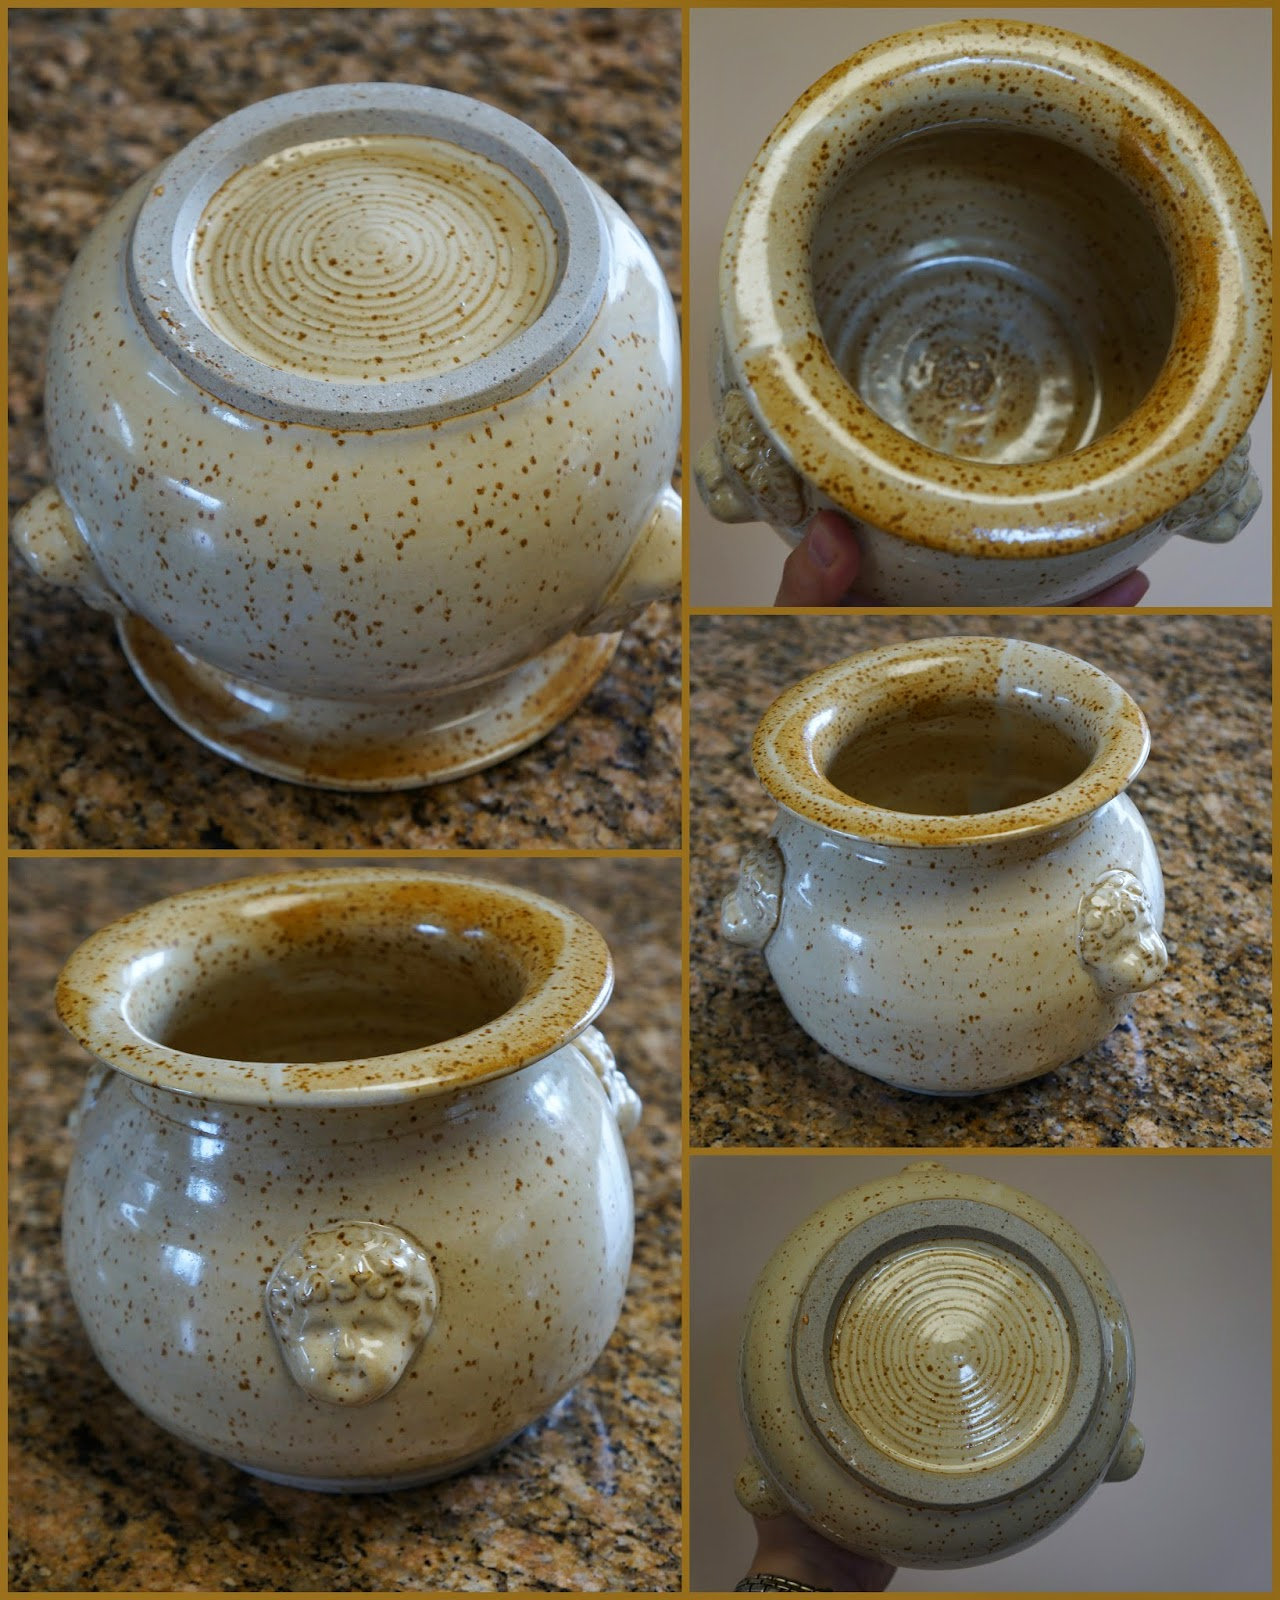 Large handmade stoneware pottery vase / pot with doll faces on sides.